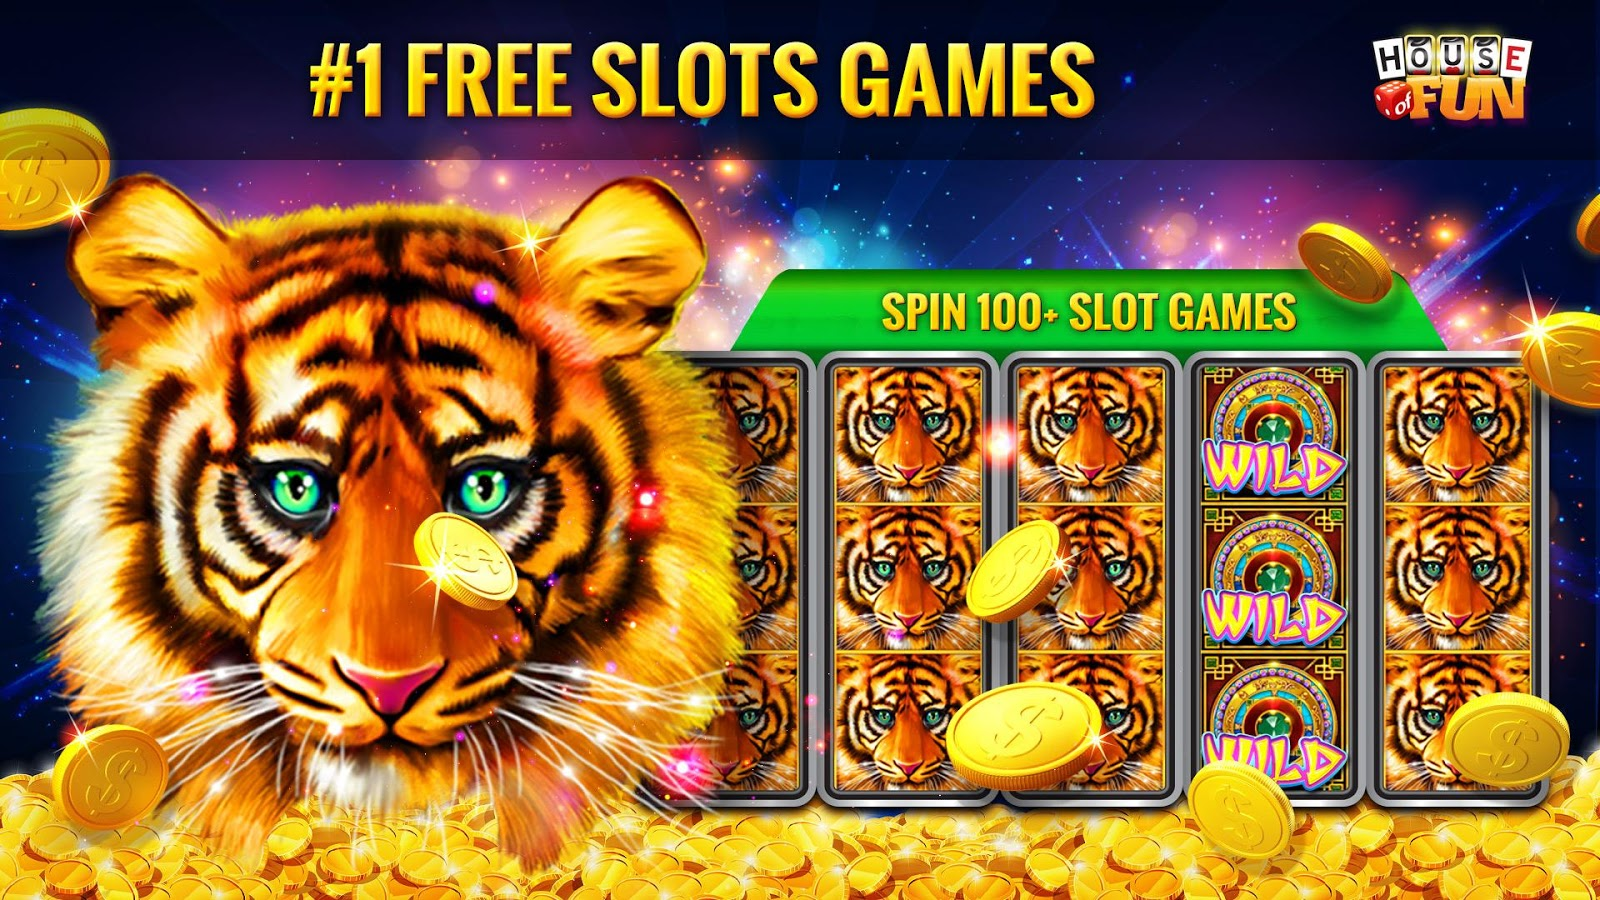 New Free Online Casino Slot Games